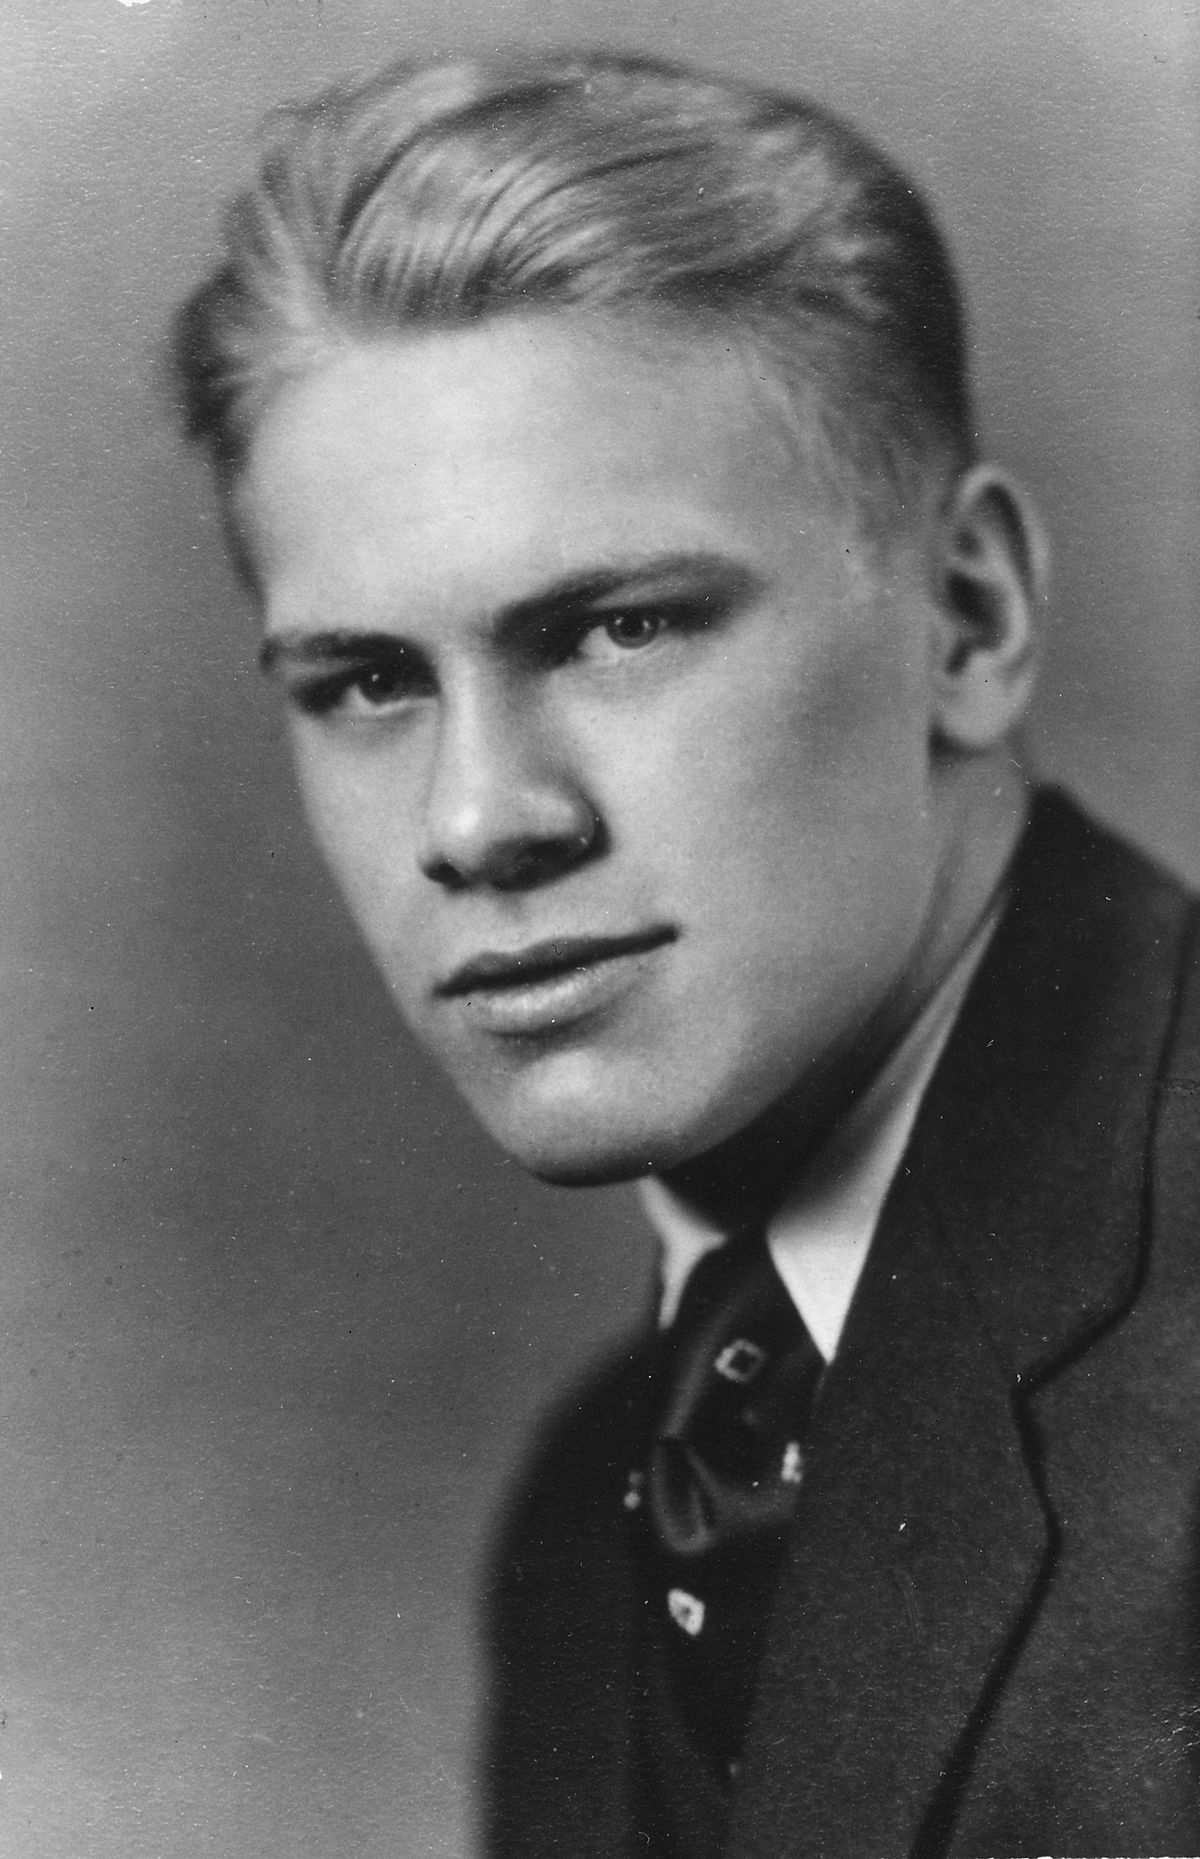 Gerald Ford Wikimedia Commons